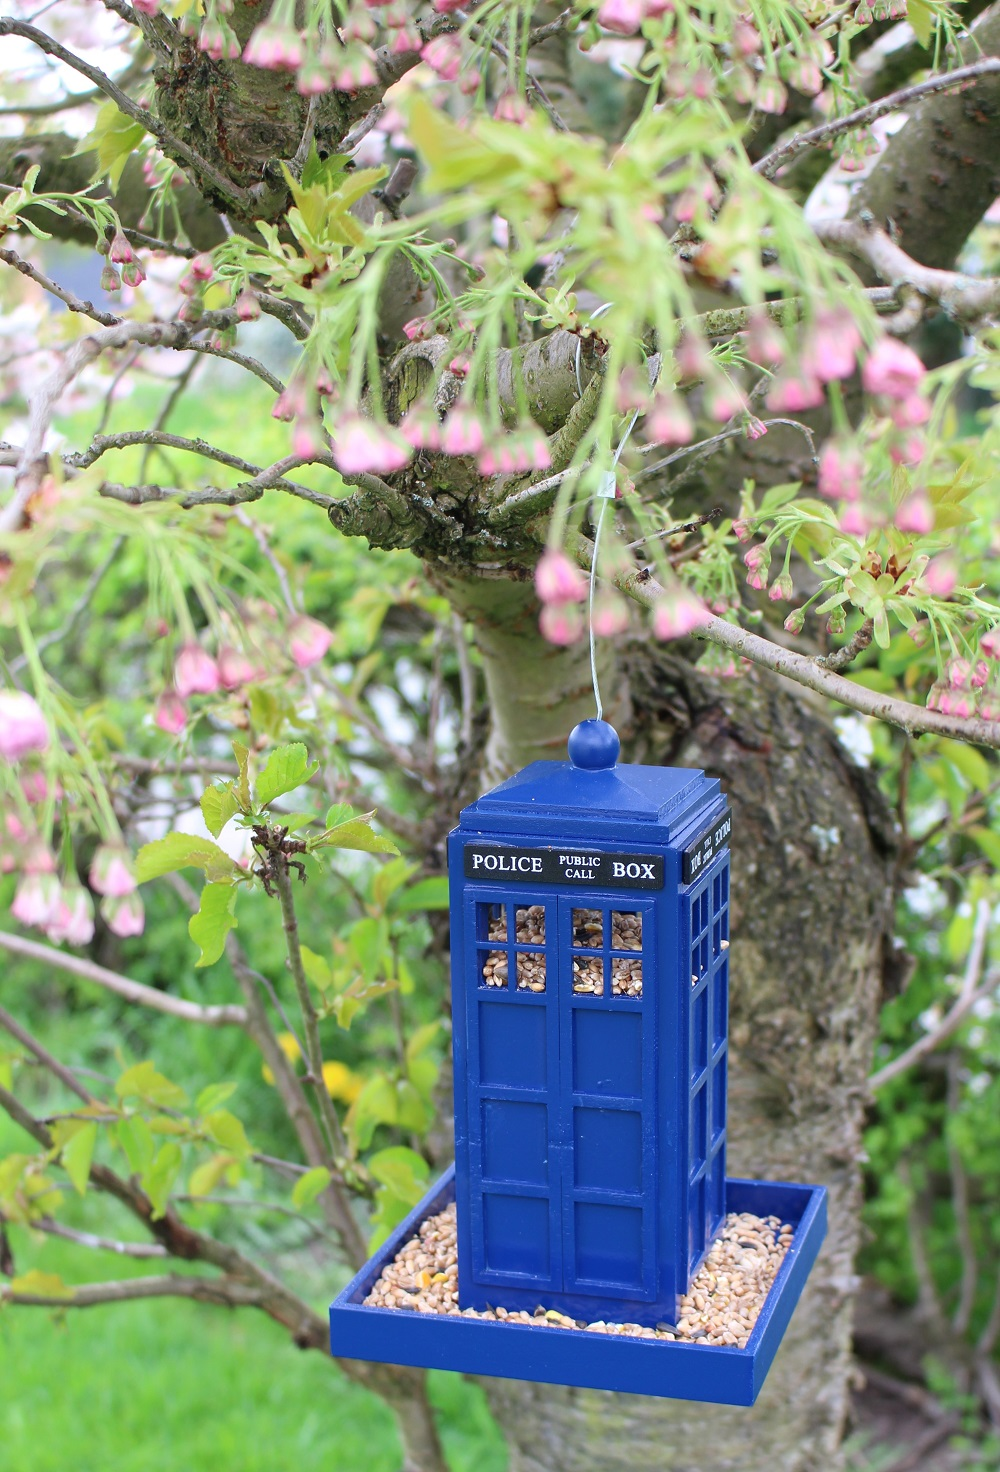 Police Box Bird Feeder From Peach Perfect 3